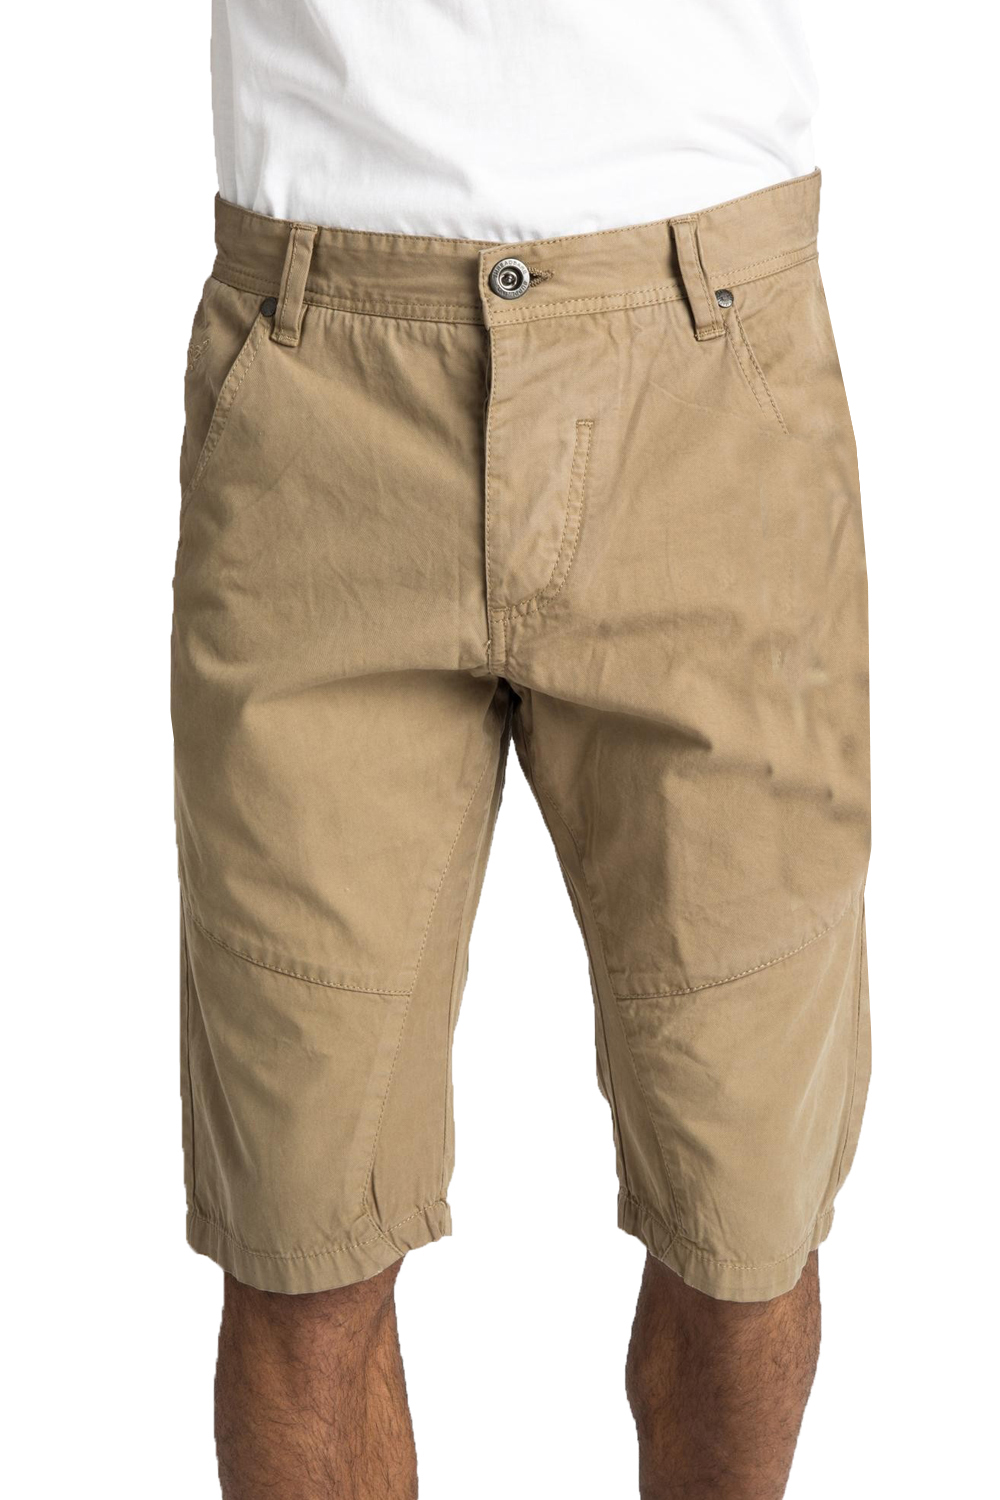 Free shipping and returns on Men's Long Shorts at shopnew-5uel8qry.cf